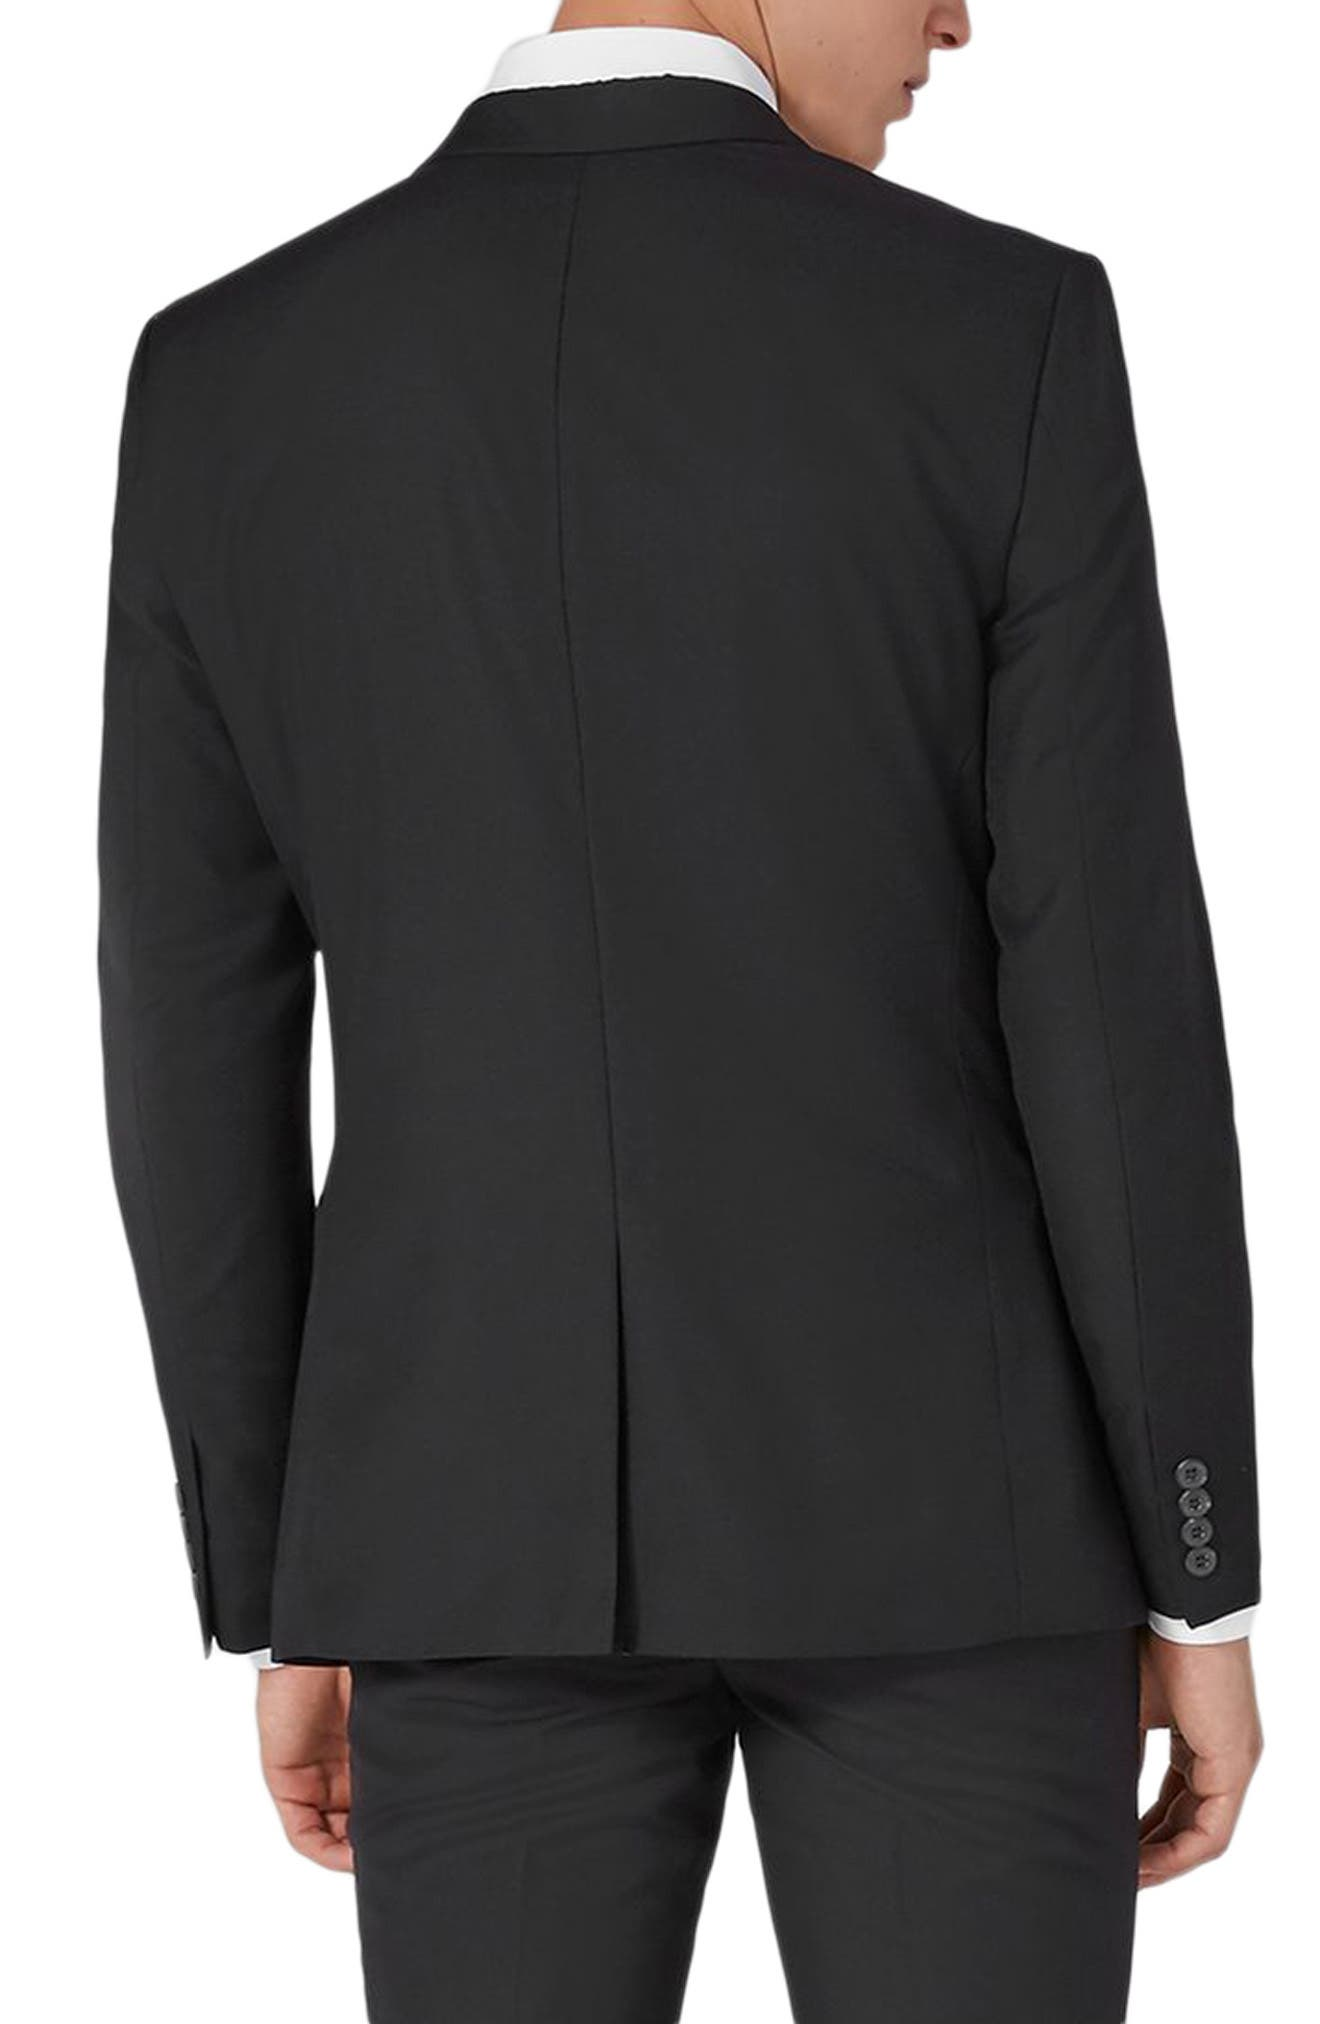 TOPMAN, Skinny Fit One-Button Suit Jacket, Alternate thumbnail 2, color, BLACK